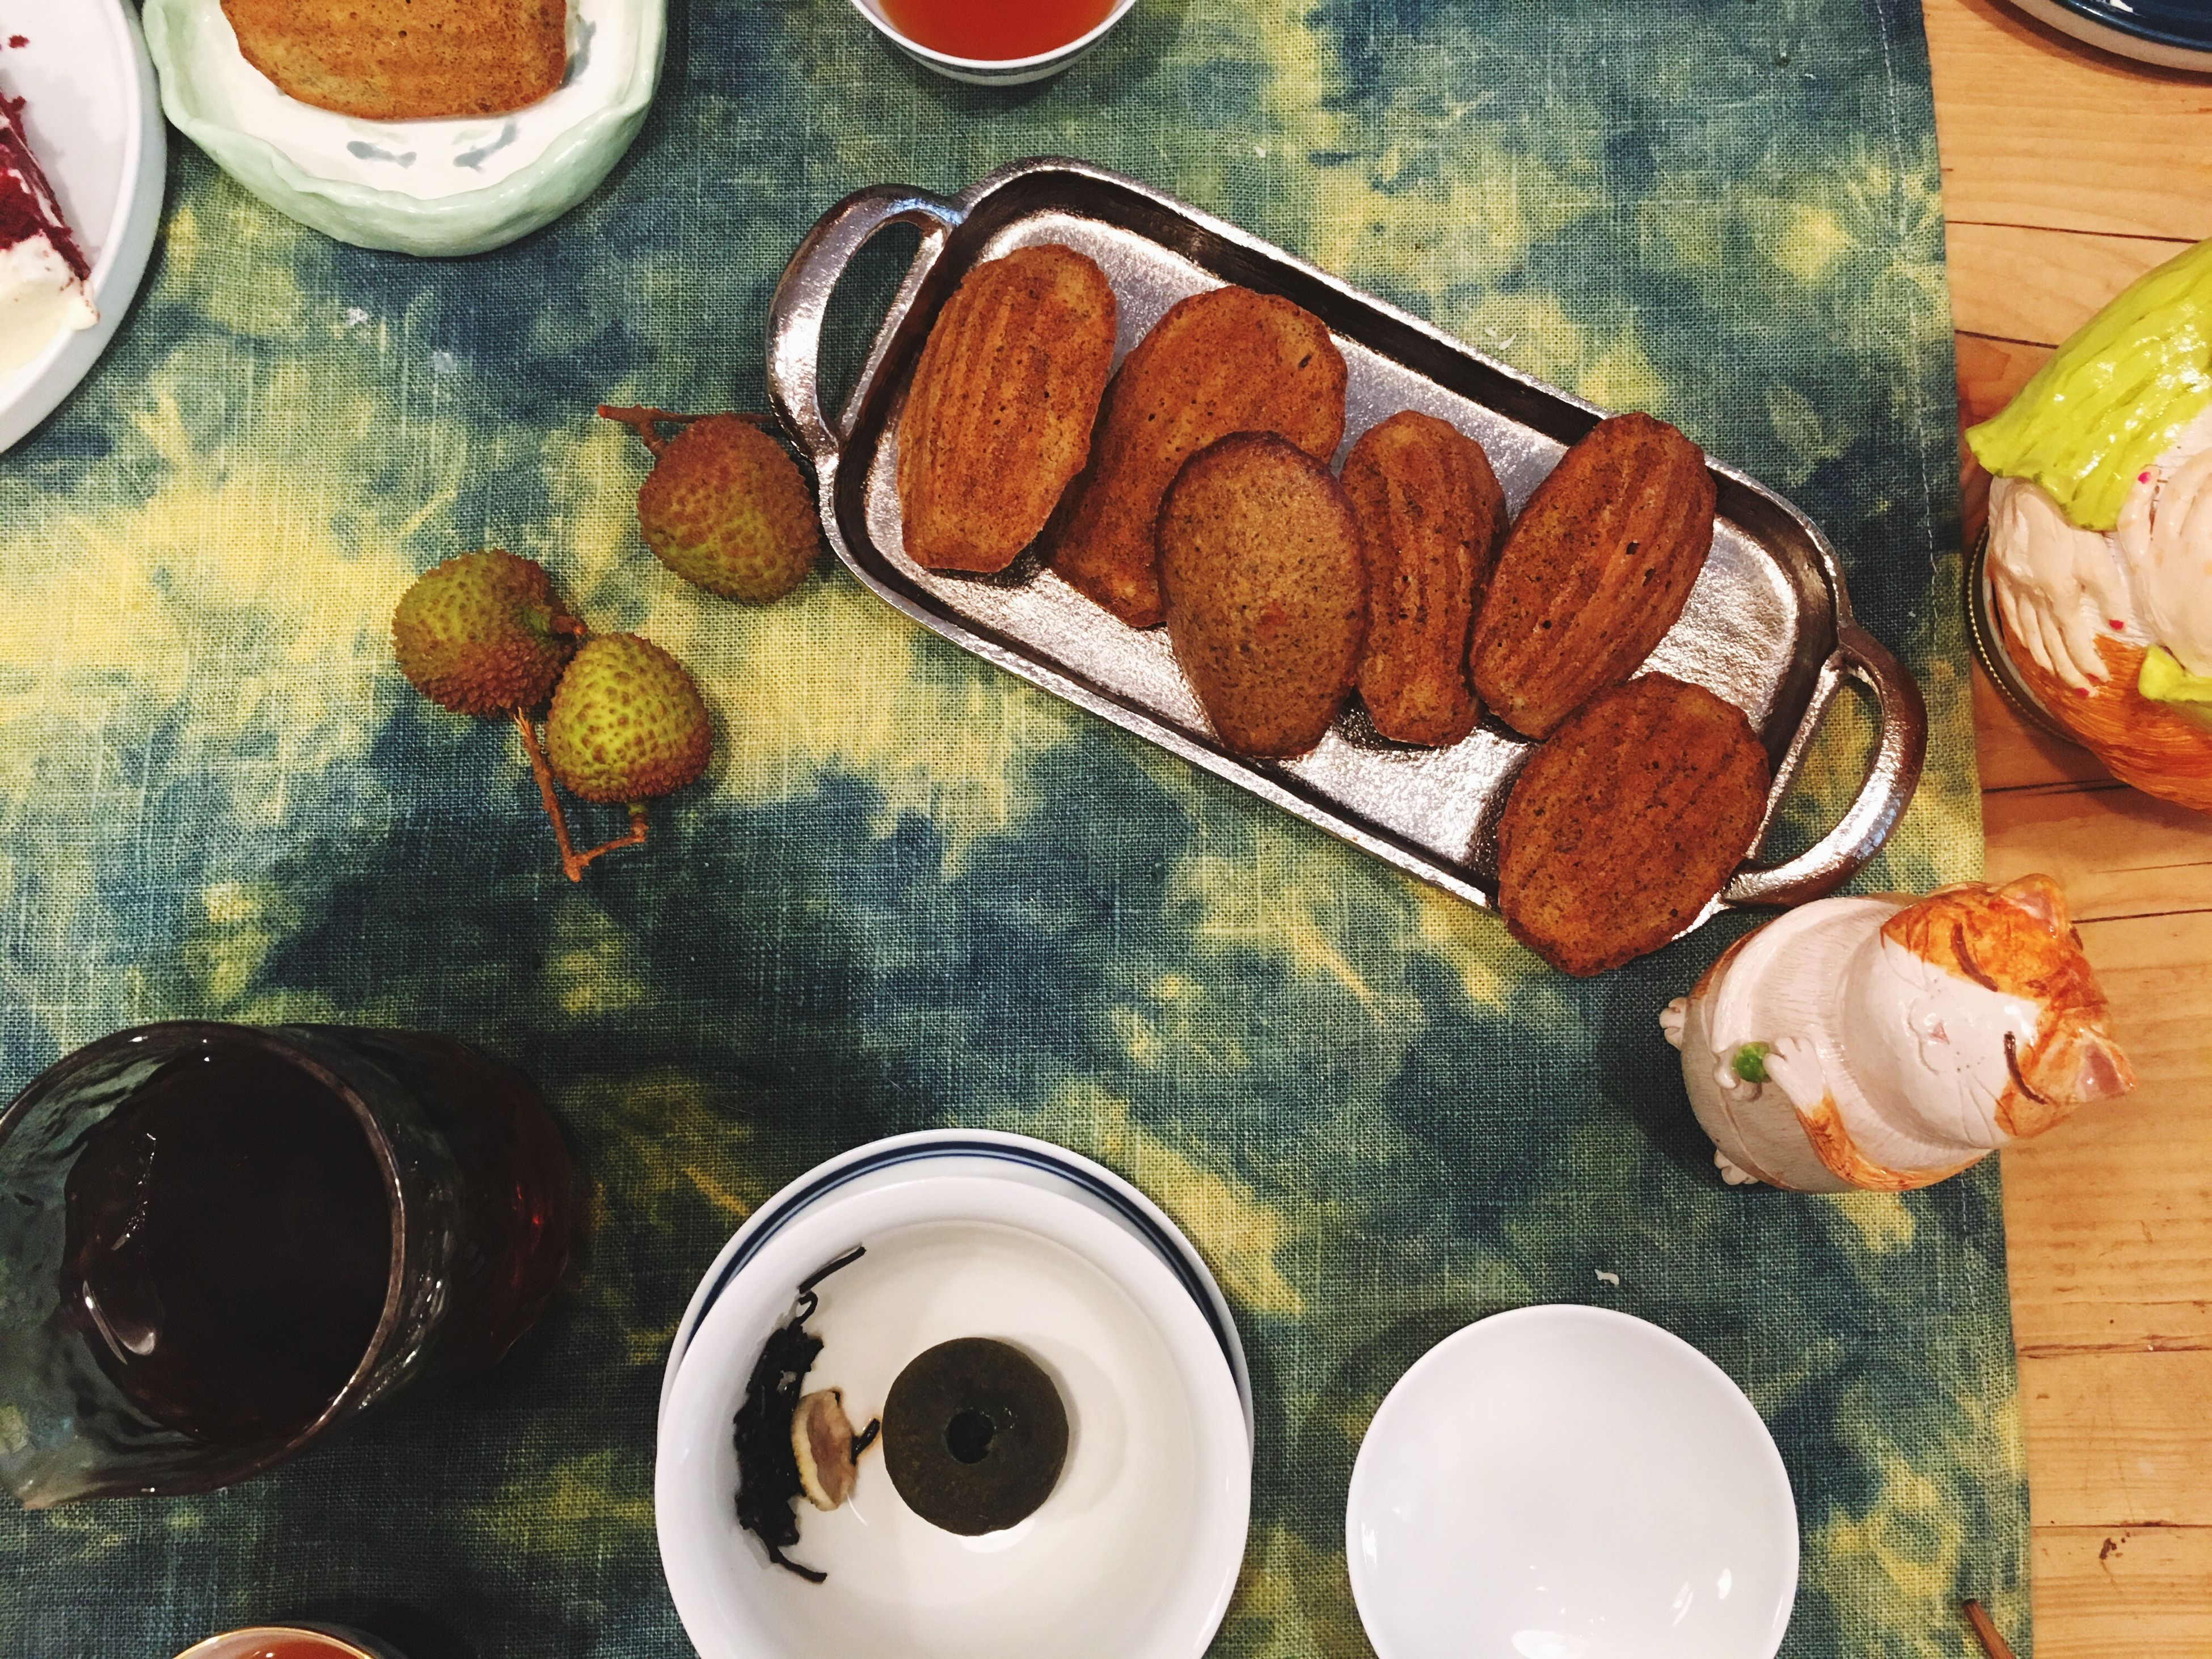 table, food and drink, indoors, food, freshness, no people, refreshment, high angle view, drink, plate, bowl, directly above, serving size, ready-to-eat, drinking glass, healthy eating, close-up, sweet food, day